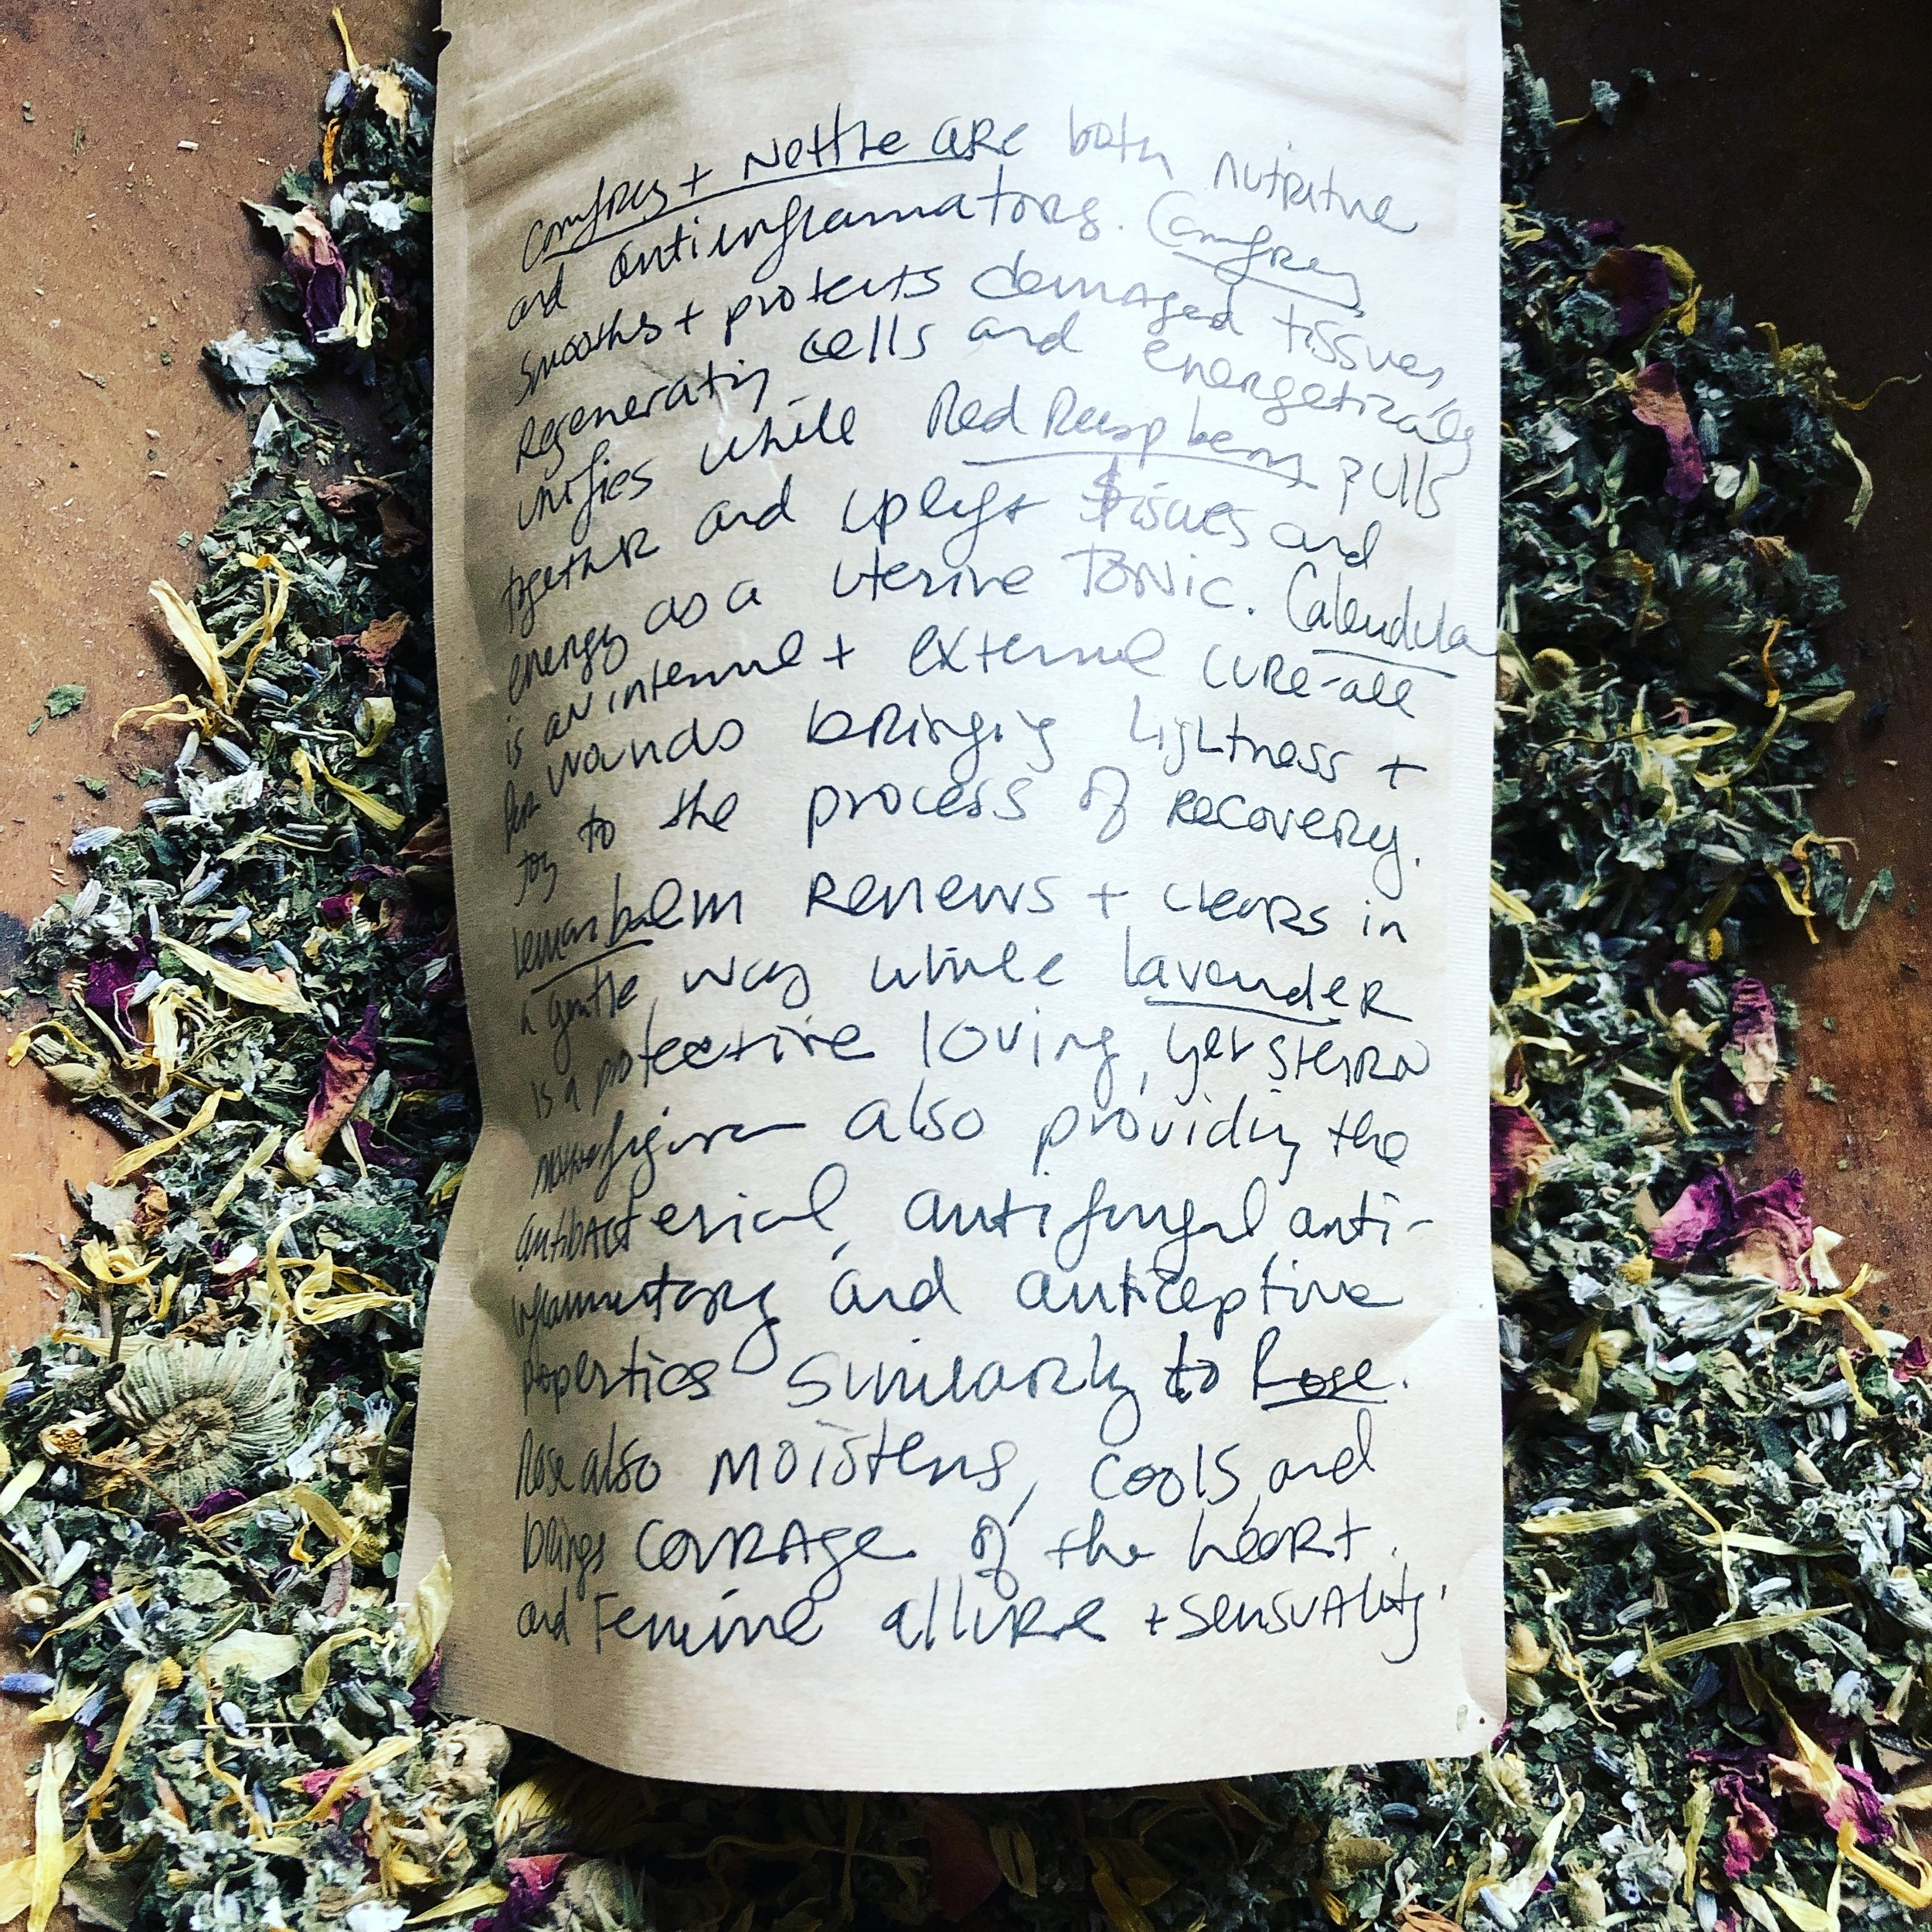 Womb Healing Sitz Bath-Yoni Steam - All Organic and sustainably harvested herbs were formulated by hand in my home apothecary in Brooklyn, NY and are now blended to order in our new home in Croton-on-Hudson, NY.This formula is charged with the mantra: I am beautiful, Blissful, and Bountiful; I am. Plant allies to support you, like a good friend hand and hand, in this blend include: Comfrey, Nettle, Red Raspberry leaf, Calendula, Lemon Balm, Lavender, and Rose buds and petals.Comfrey and nettle are both nutritive and anti-inflammatory. Comfrey soothes and protects damaged tissues, regenerates cells, and energetically unifies while Red Raspberry pulls together and uplifts tissues and energy as a uterine tonic. Calendula is an internal and external wound healer, bringing light to the process of recovery. Lemon Balm renews and clears in a gentle way, while the stern auntie energy and medicine of Lavender protects and loves with her stern antibacterial, anti-fungal, anti-inflammatory, and antiseptic properties similarly to Rose. Rose also helps to moisten and cool, while bringing courage to your heart and evoking feminine allure and sensuality.